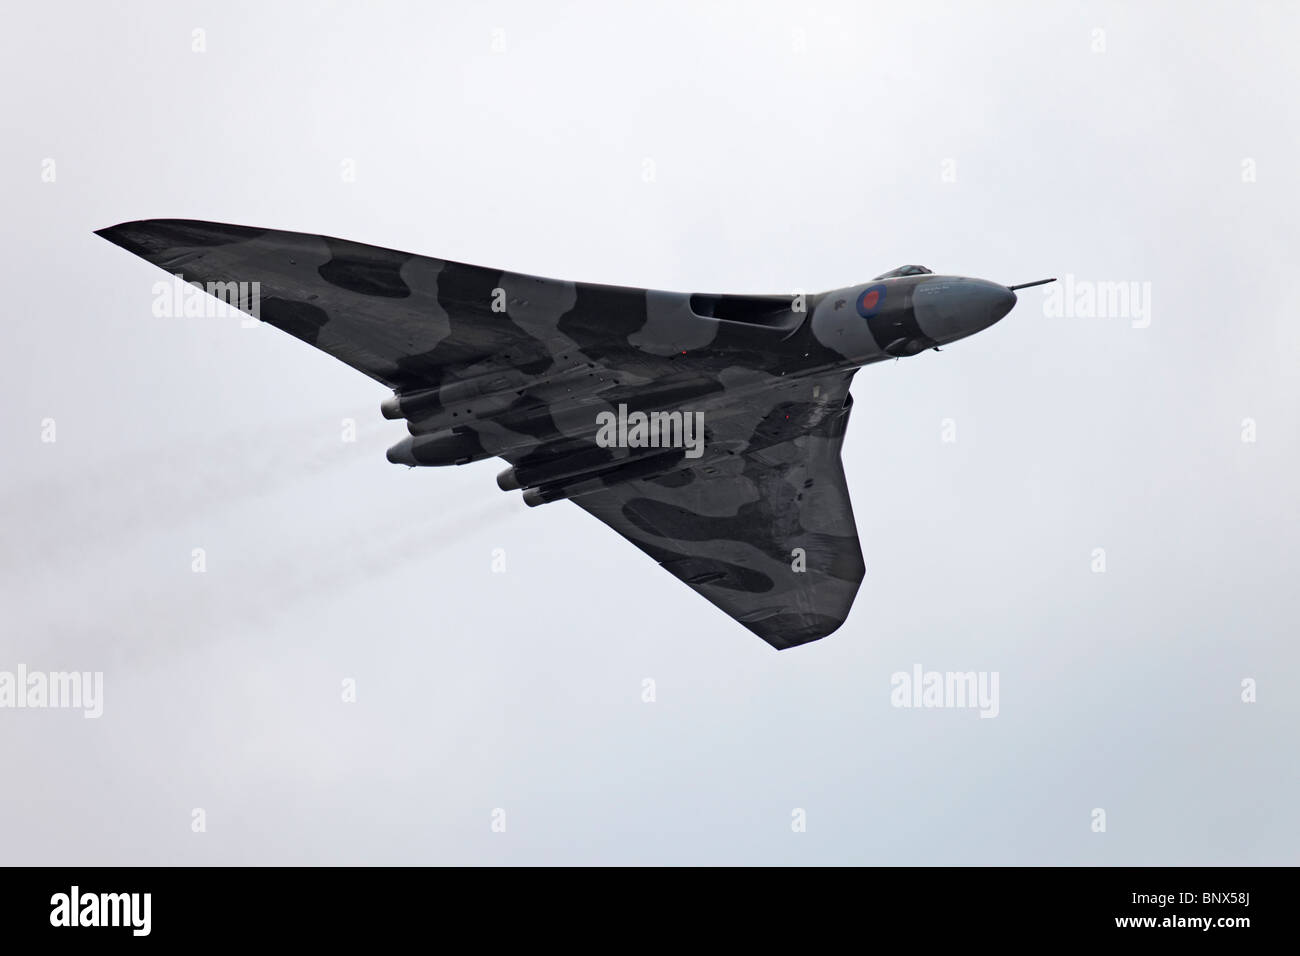 Farnborough Avro Vulcan B2 - Stock Image